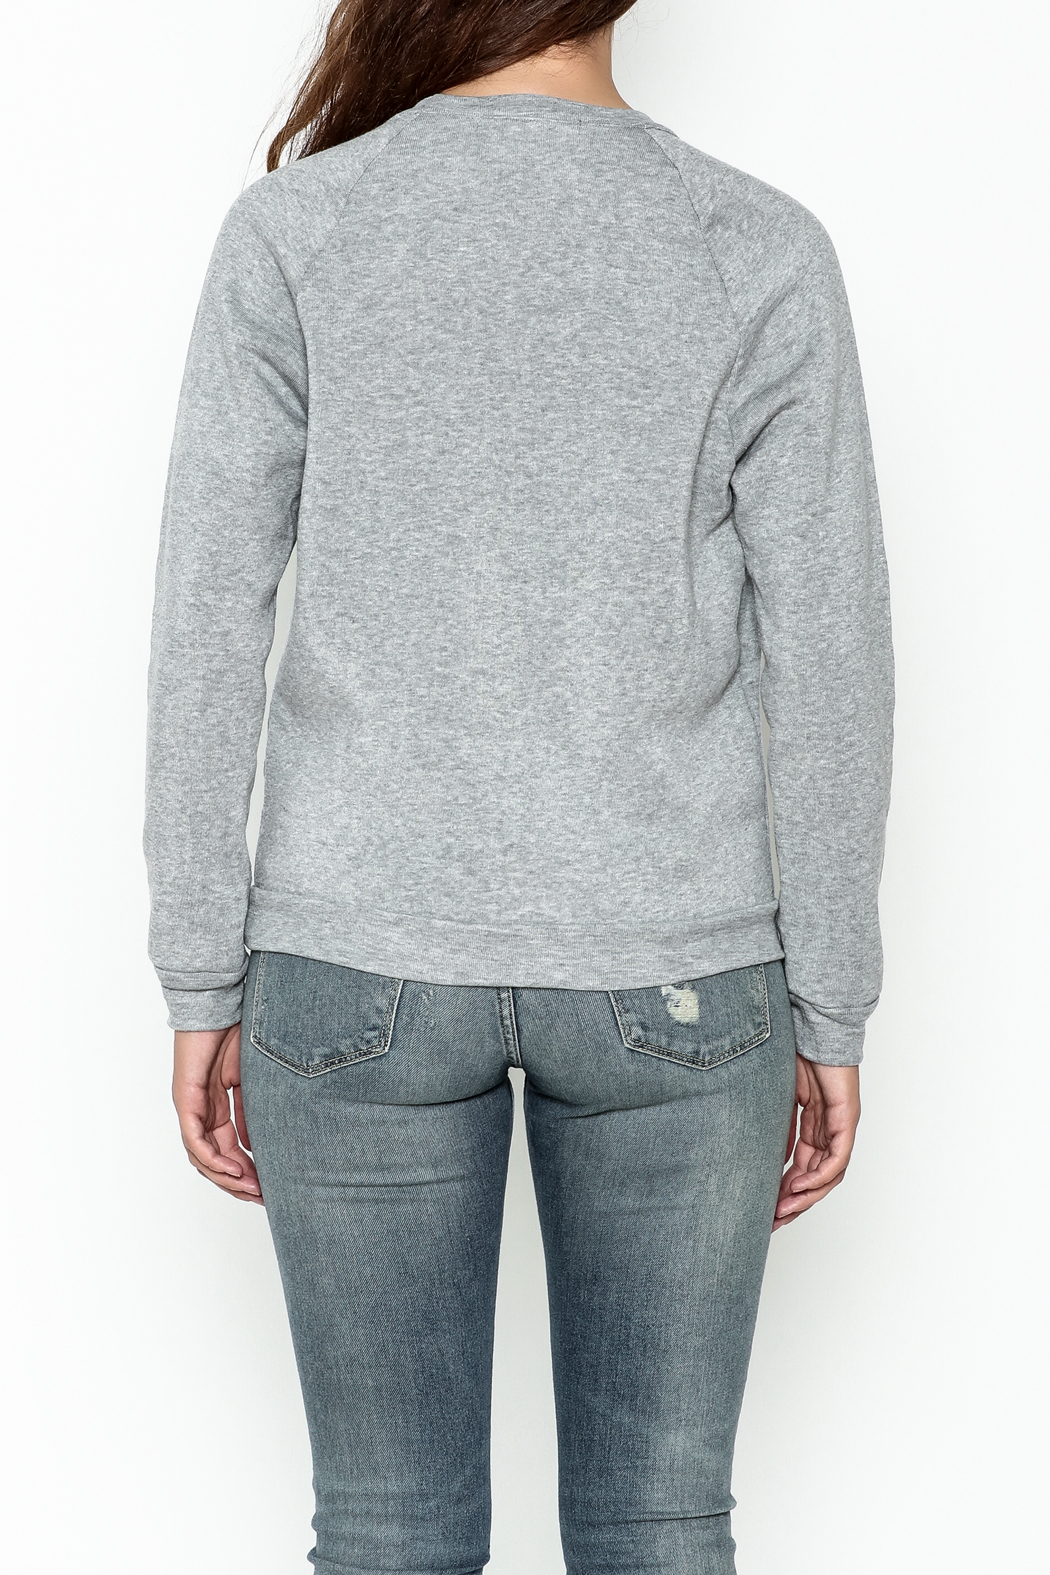 Project Social T Milo Sweatshirt - Back Cropped Image